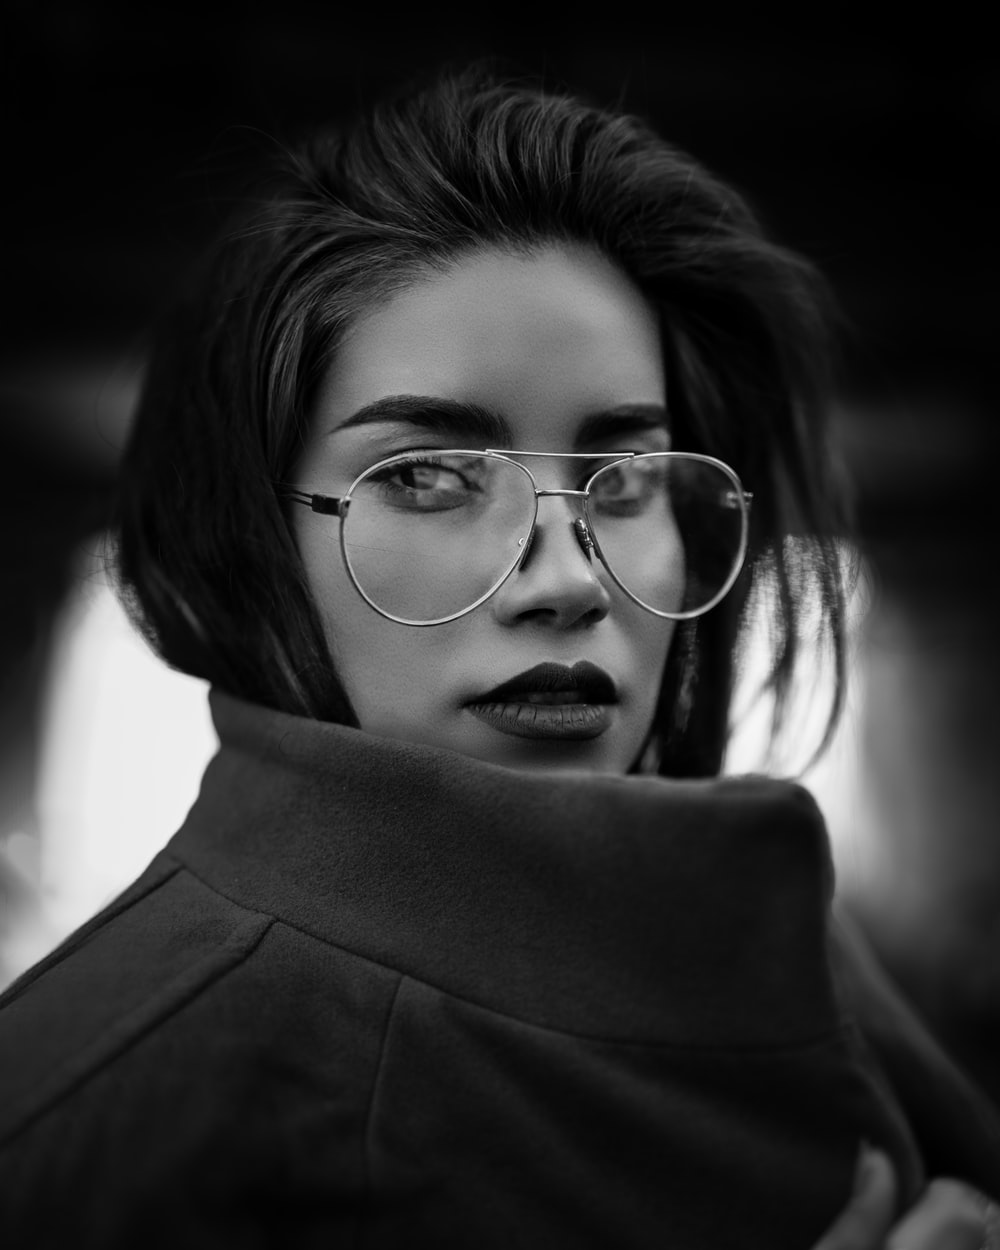 grayscale photo of woman wearing coat and eyeglasses